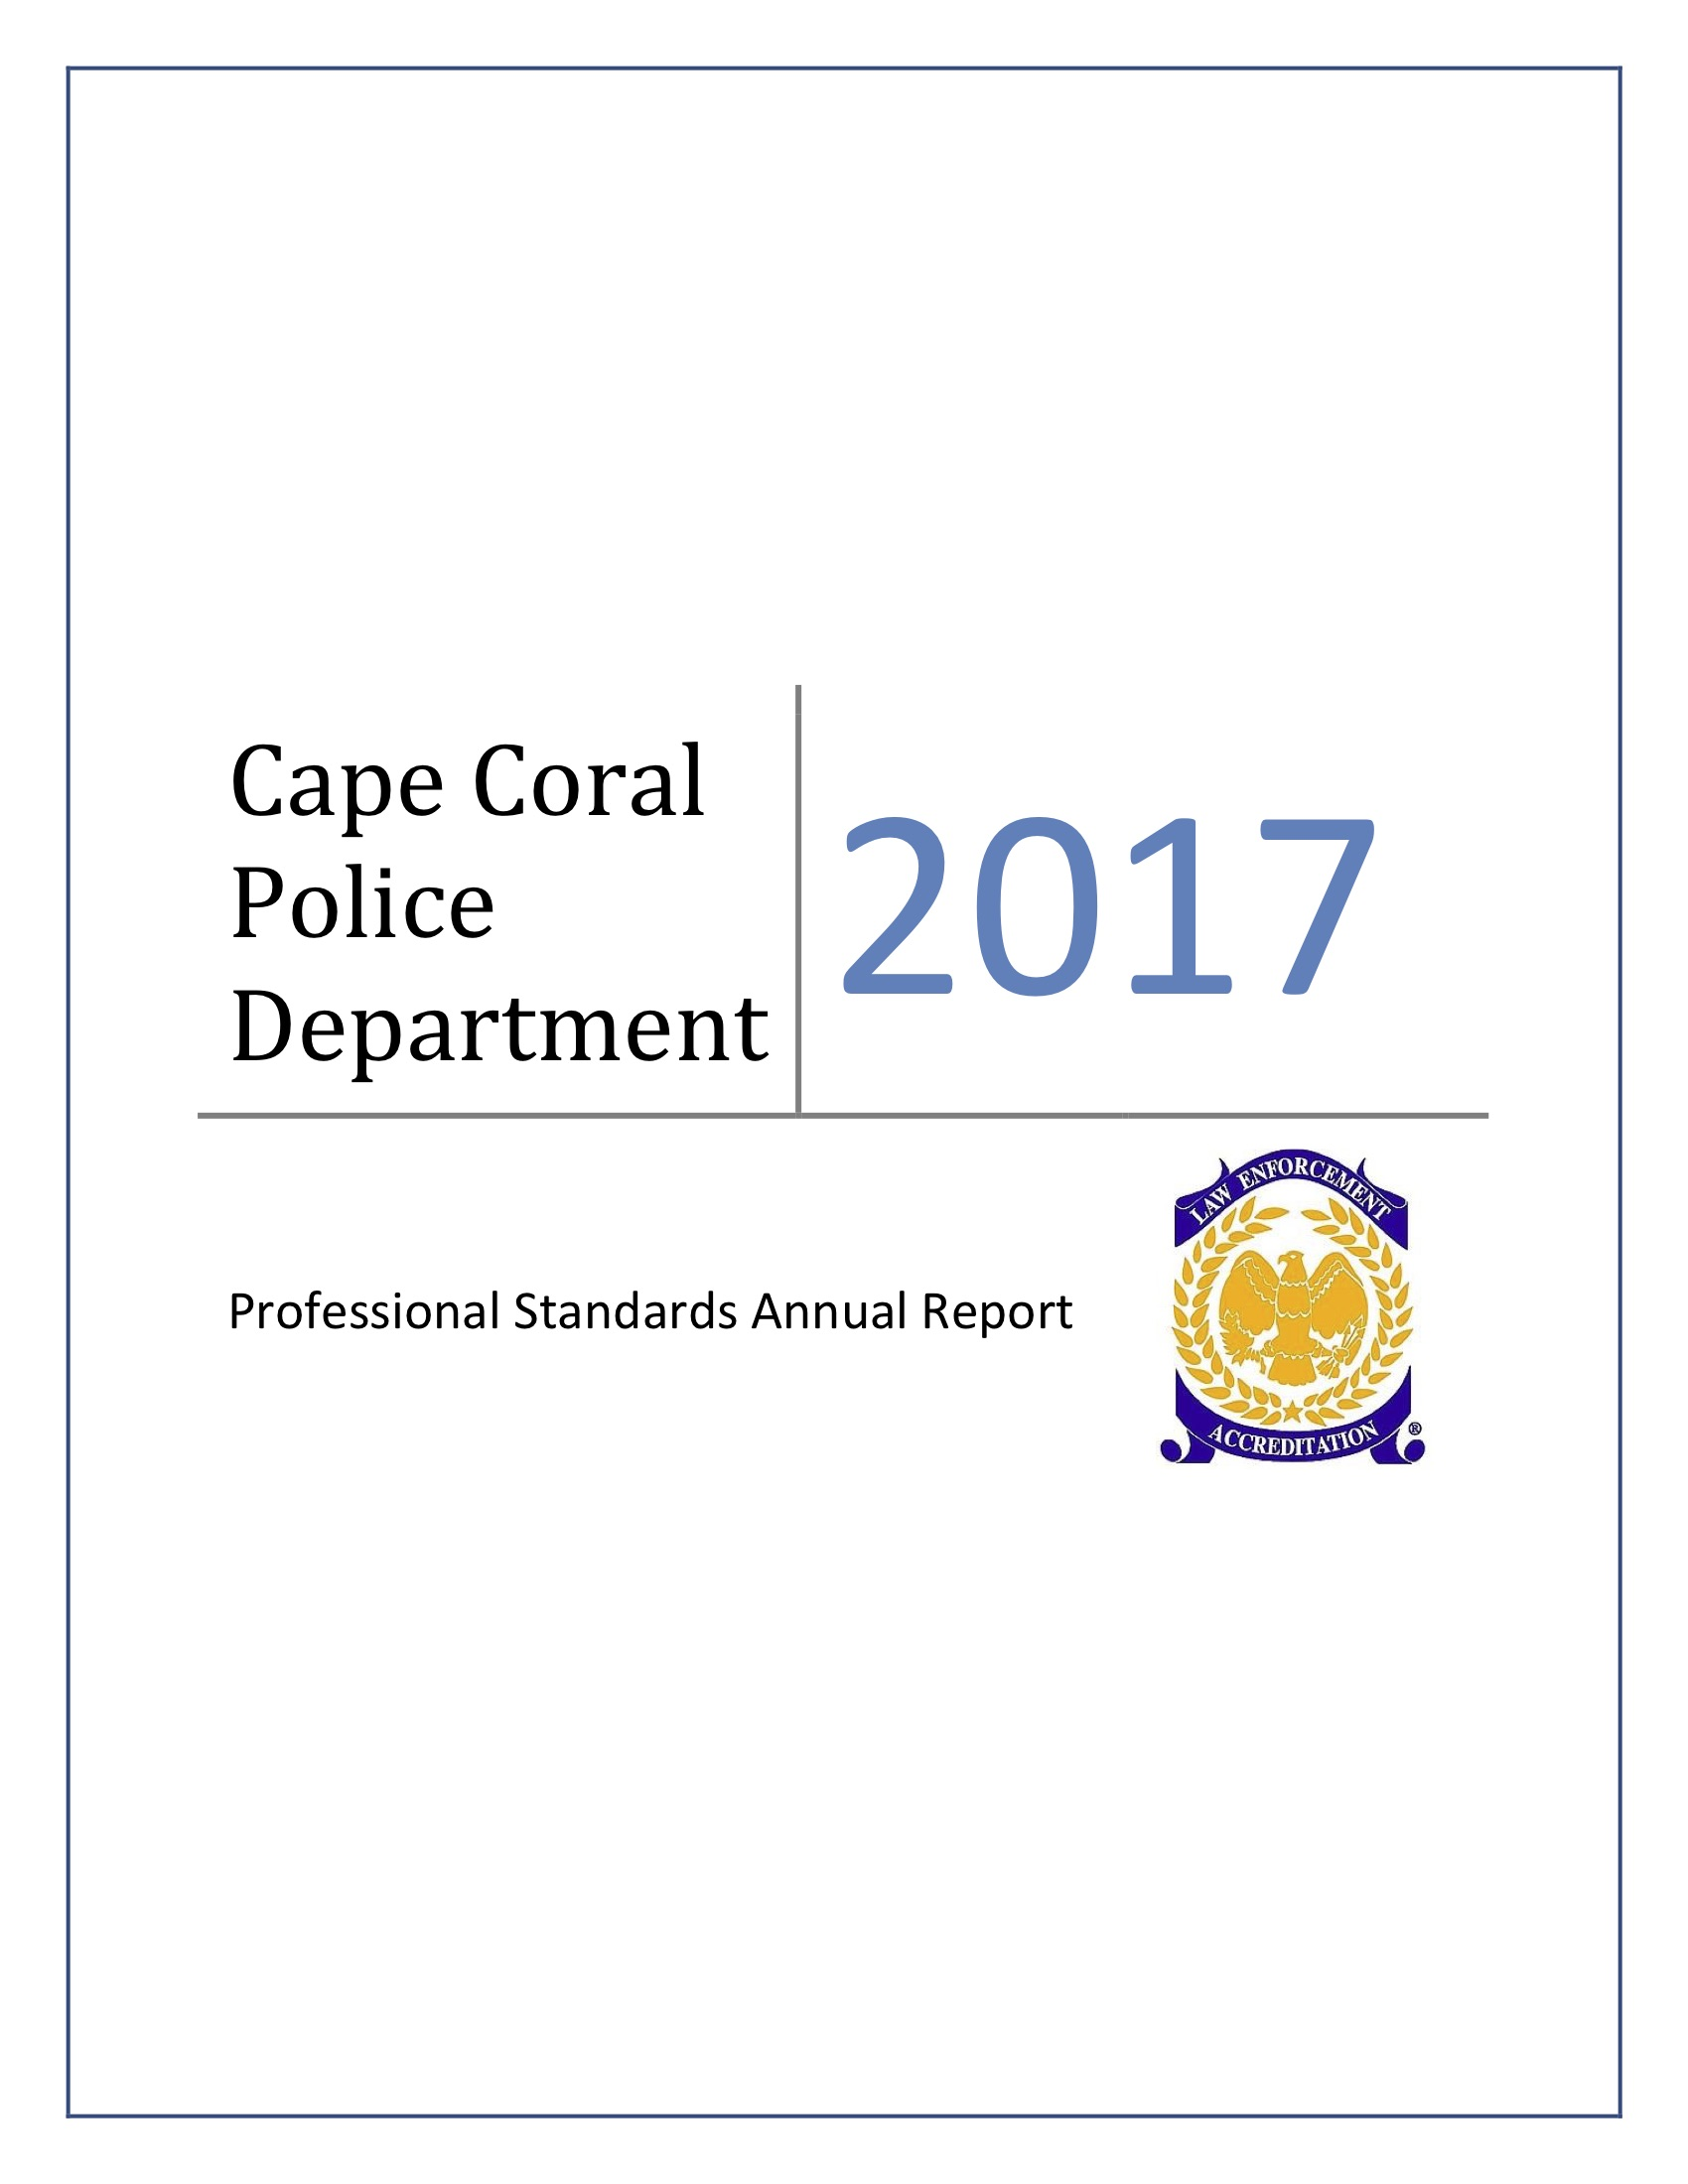 2017 Annual IA Report - The Professional Standards Bureau publishes an annual overview and statistical analysis of Internal Affairs.